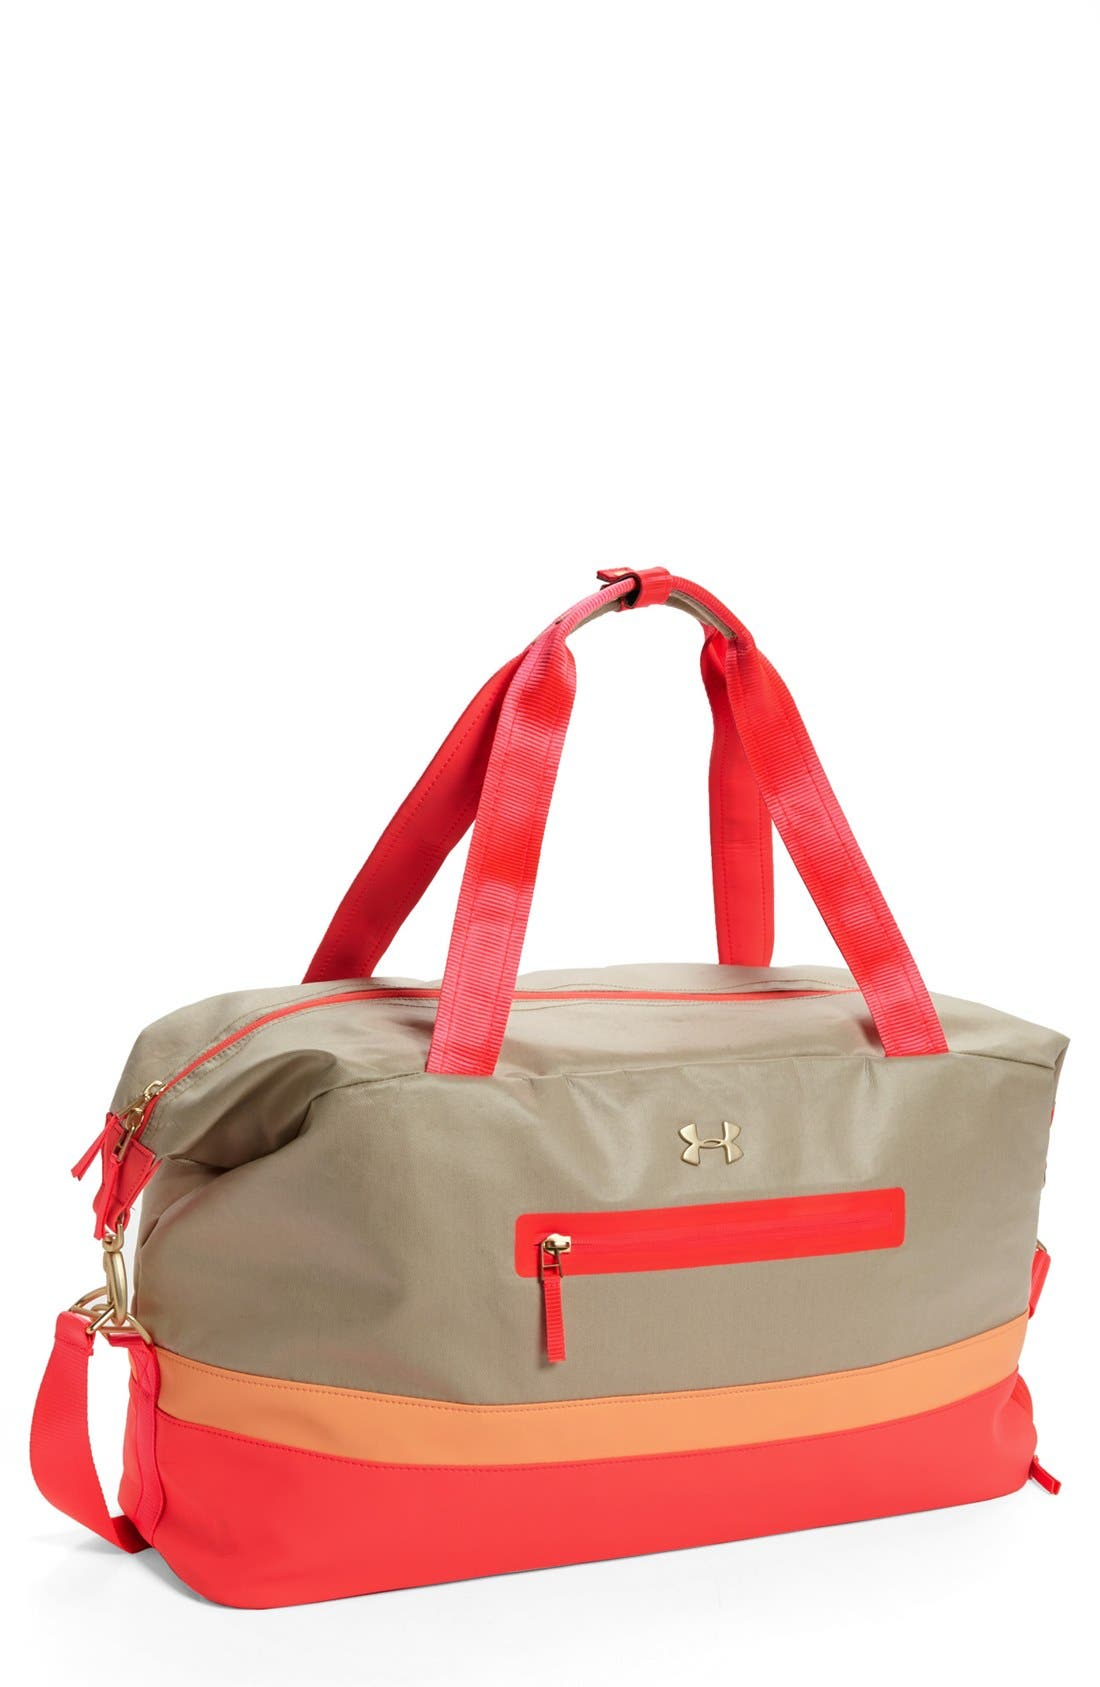 Alternate Image 1 Selected - Under Armour 'Perfect Flow' Duffel Bag